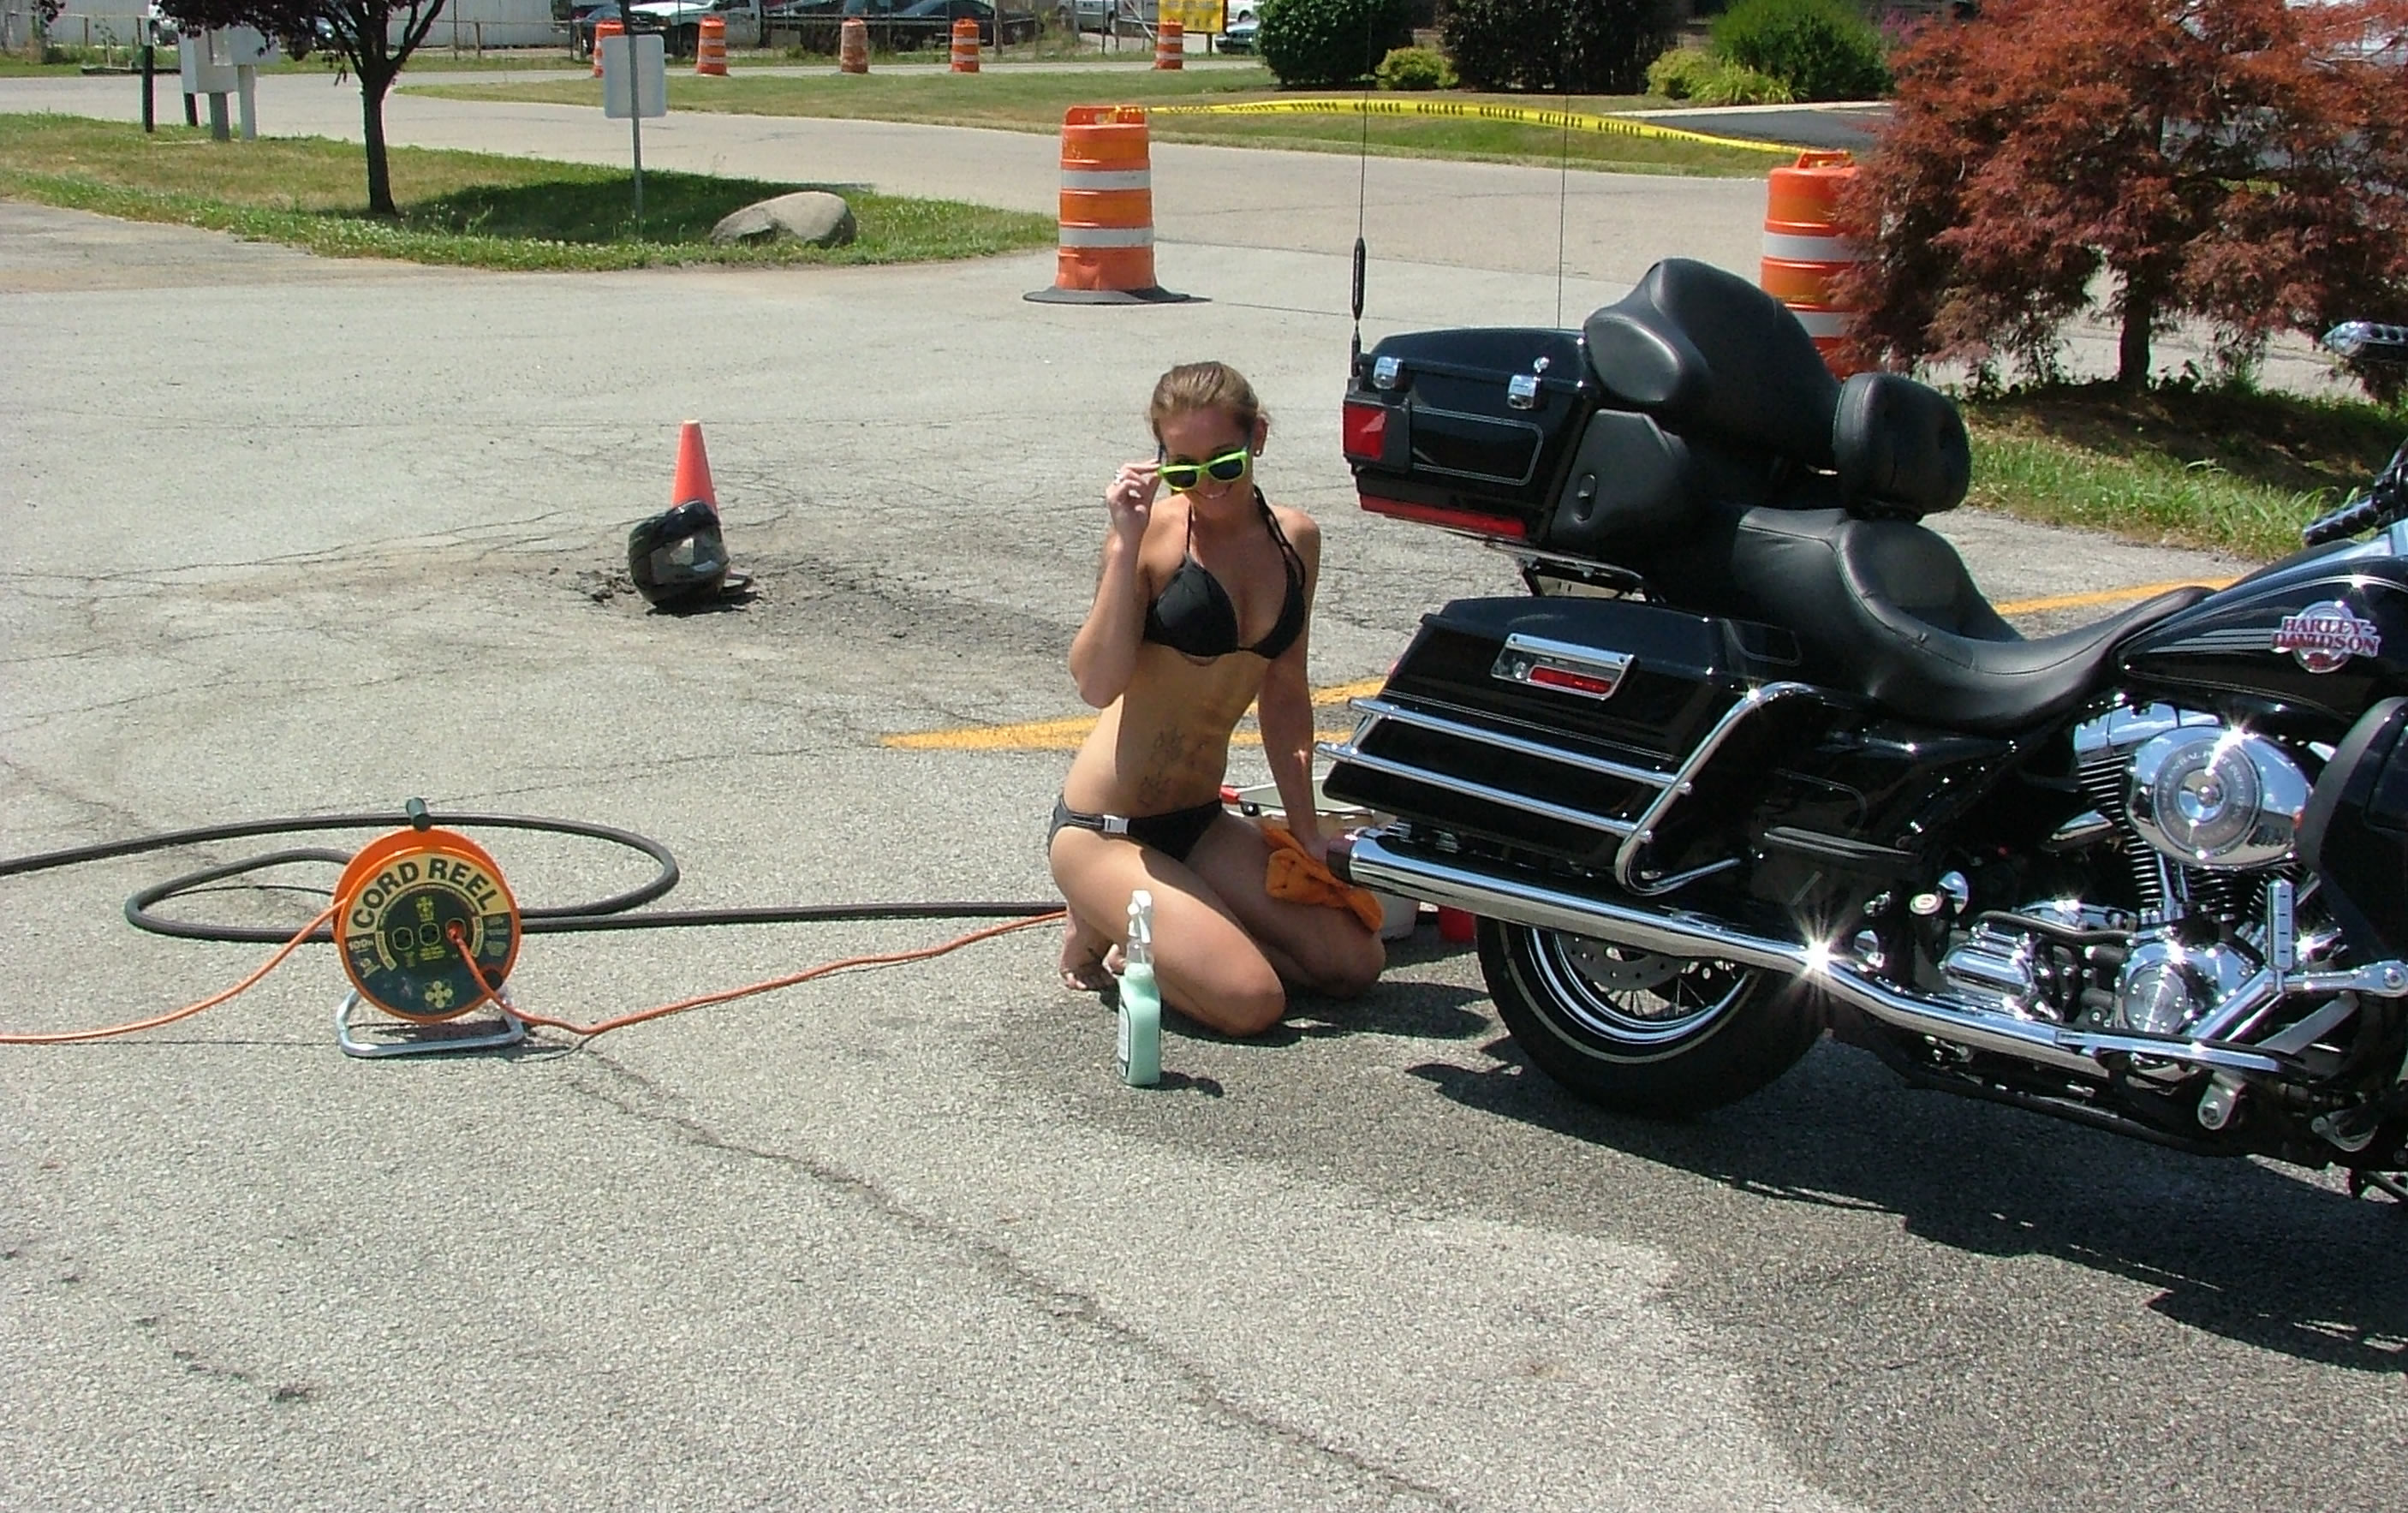 Bikini Motorcyle Bike Wash